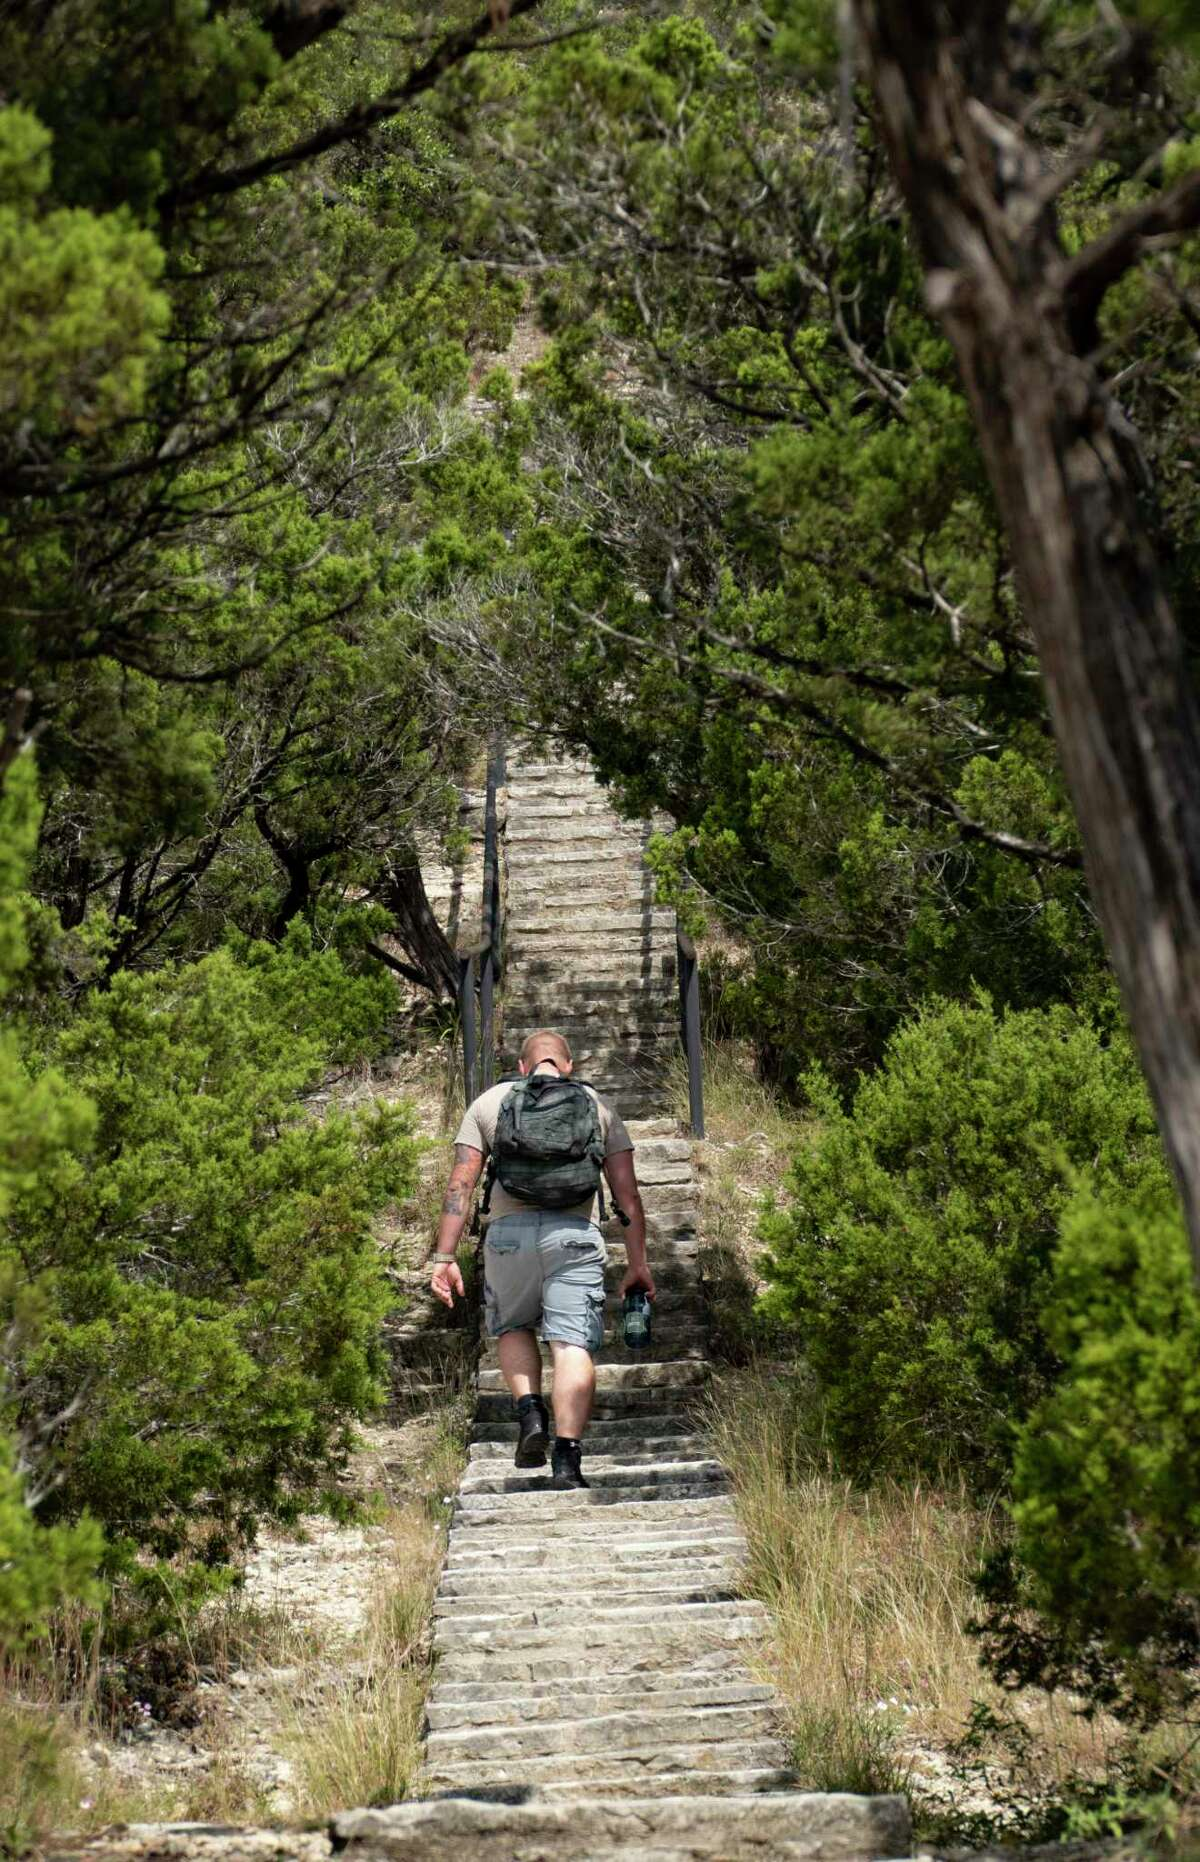 Climbing to the top of Old Baldy requires negotiating 218 rock steps.